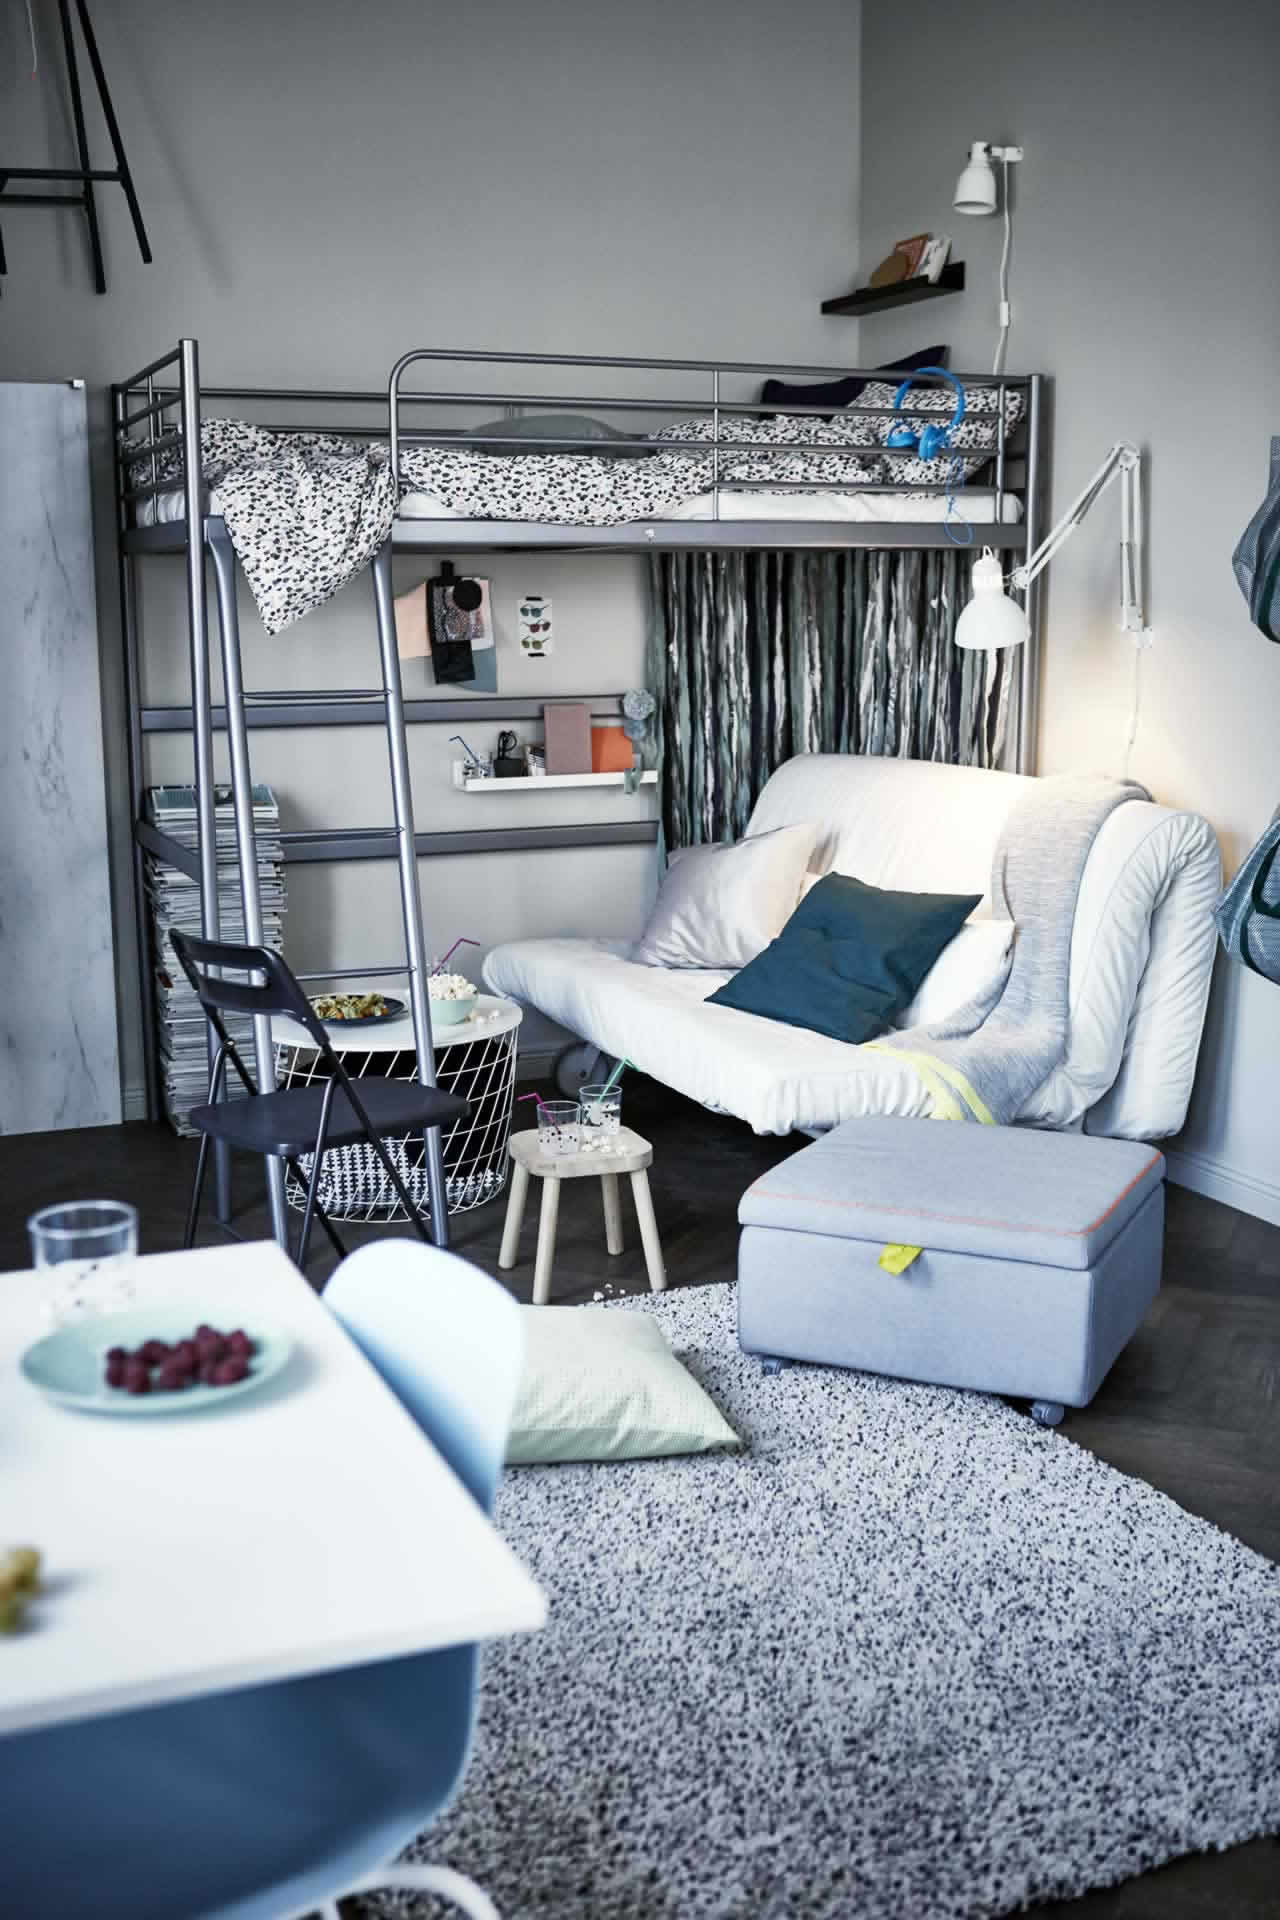 IKEA Ideas- Be ready for guests in a small space